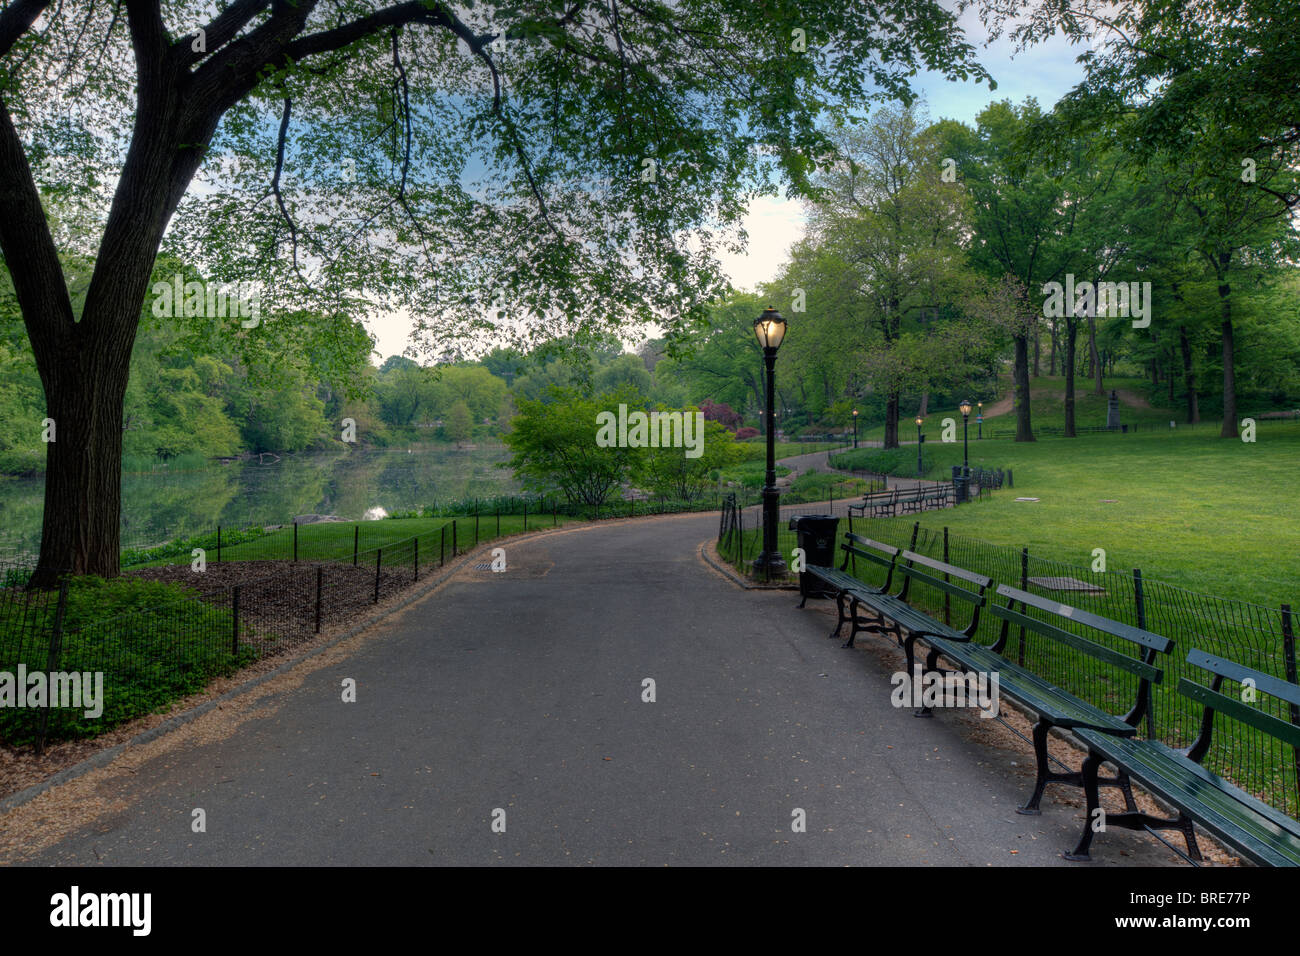 Early morning on the sidewalk in Central Park - Stock Image